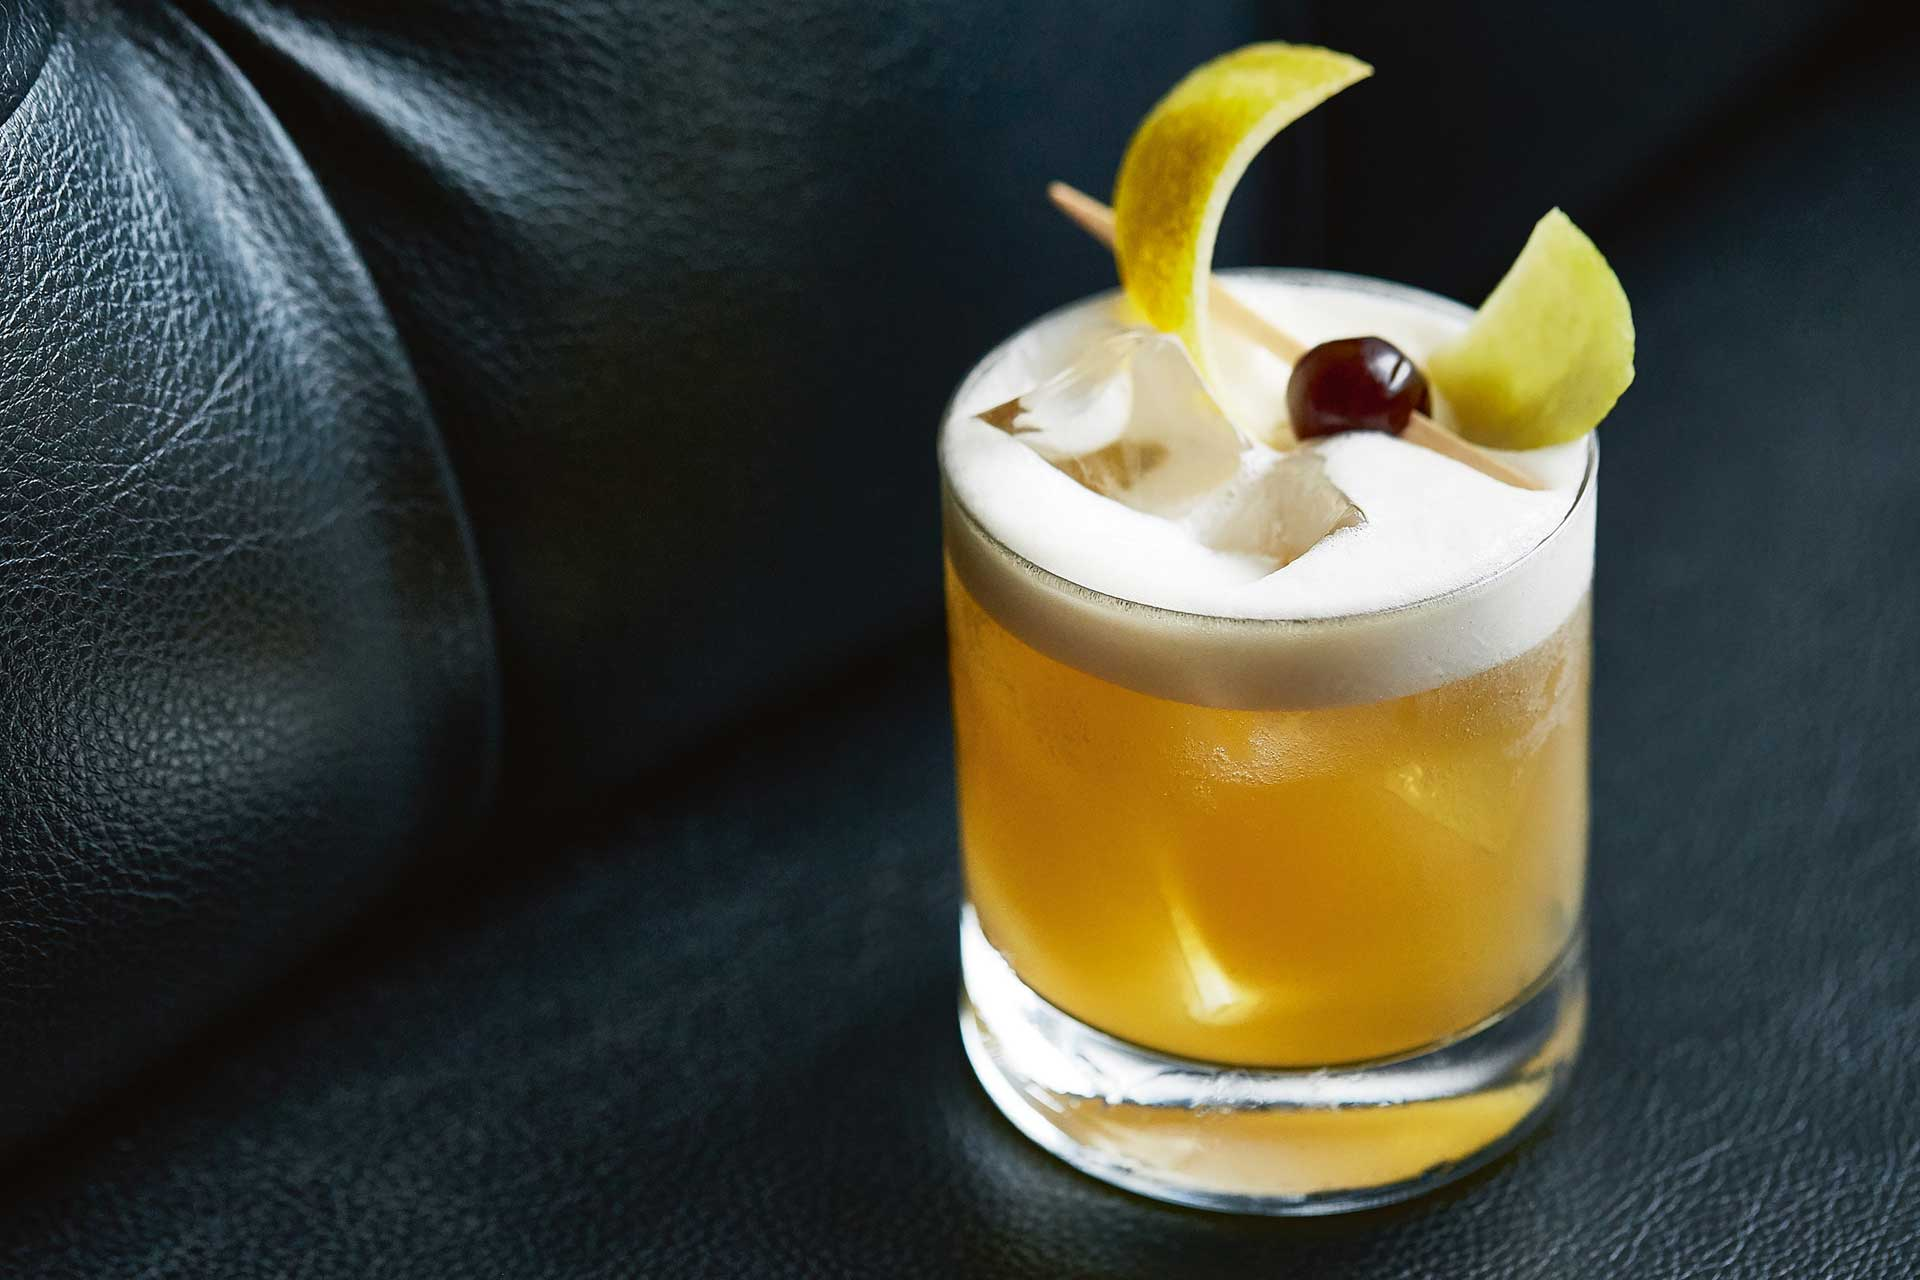 Bartender Jeffrey Morgenthaler's famous Amaretto Sour cocktail